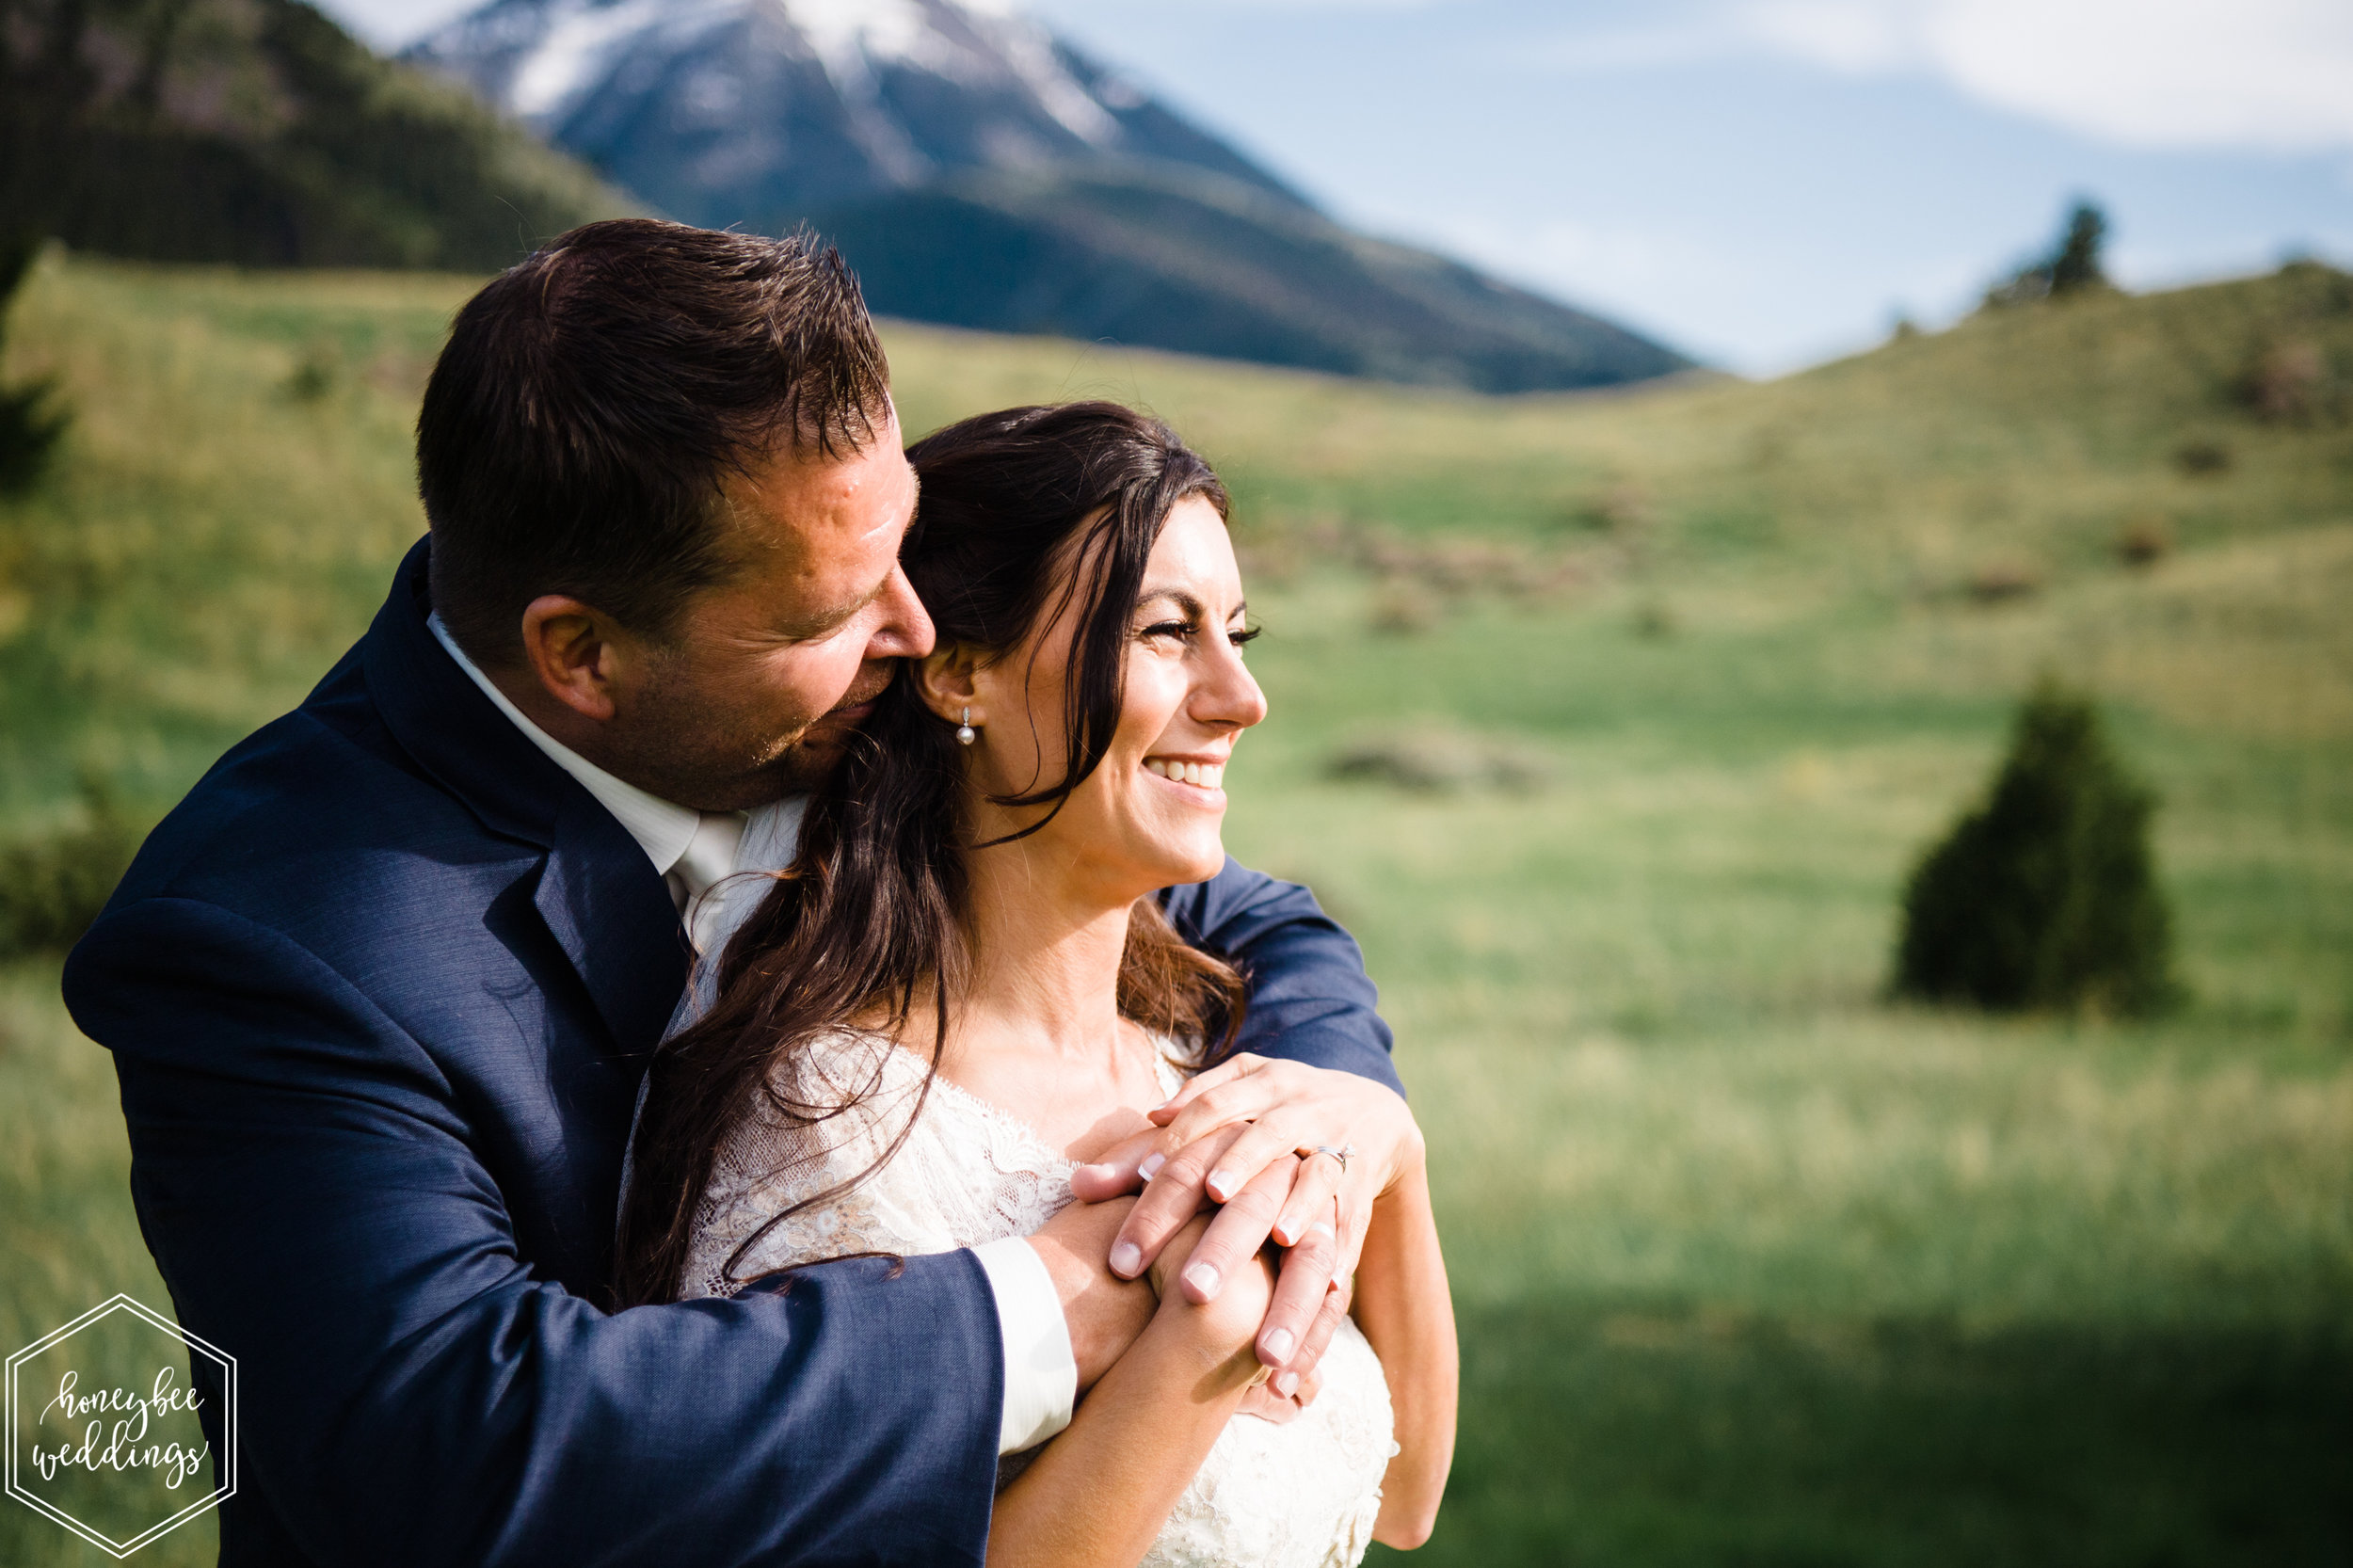 023Montana wedding photographer videographer_Chico hot springs wedding_Honeybee Weddings_Claudia & Bill_June 03, 2019-557.jpg